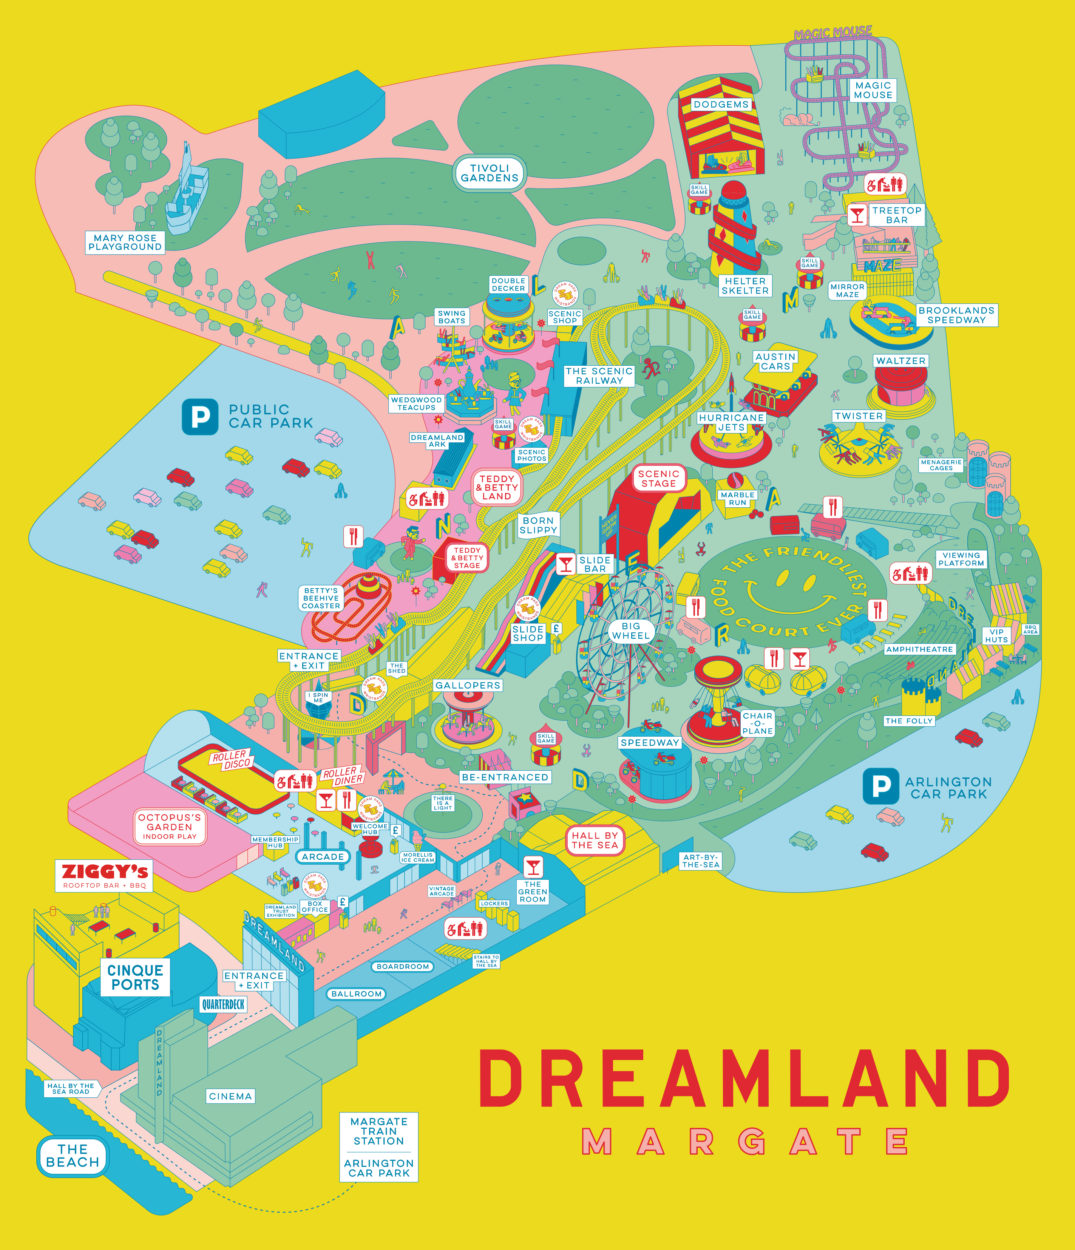 Dreamland_Map_a4_v02-1075x1250.jpg